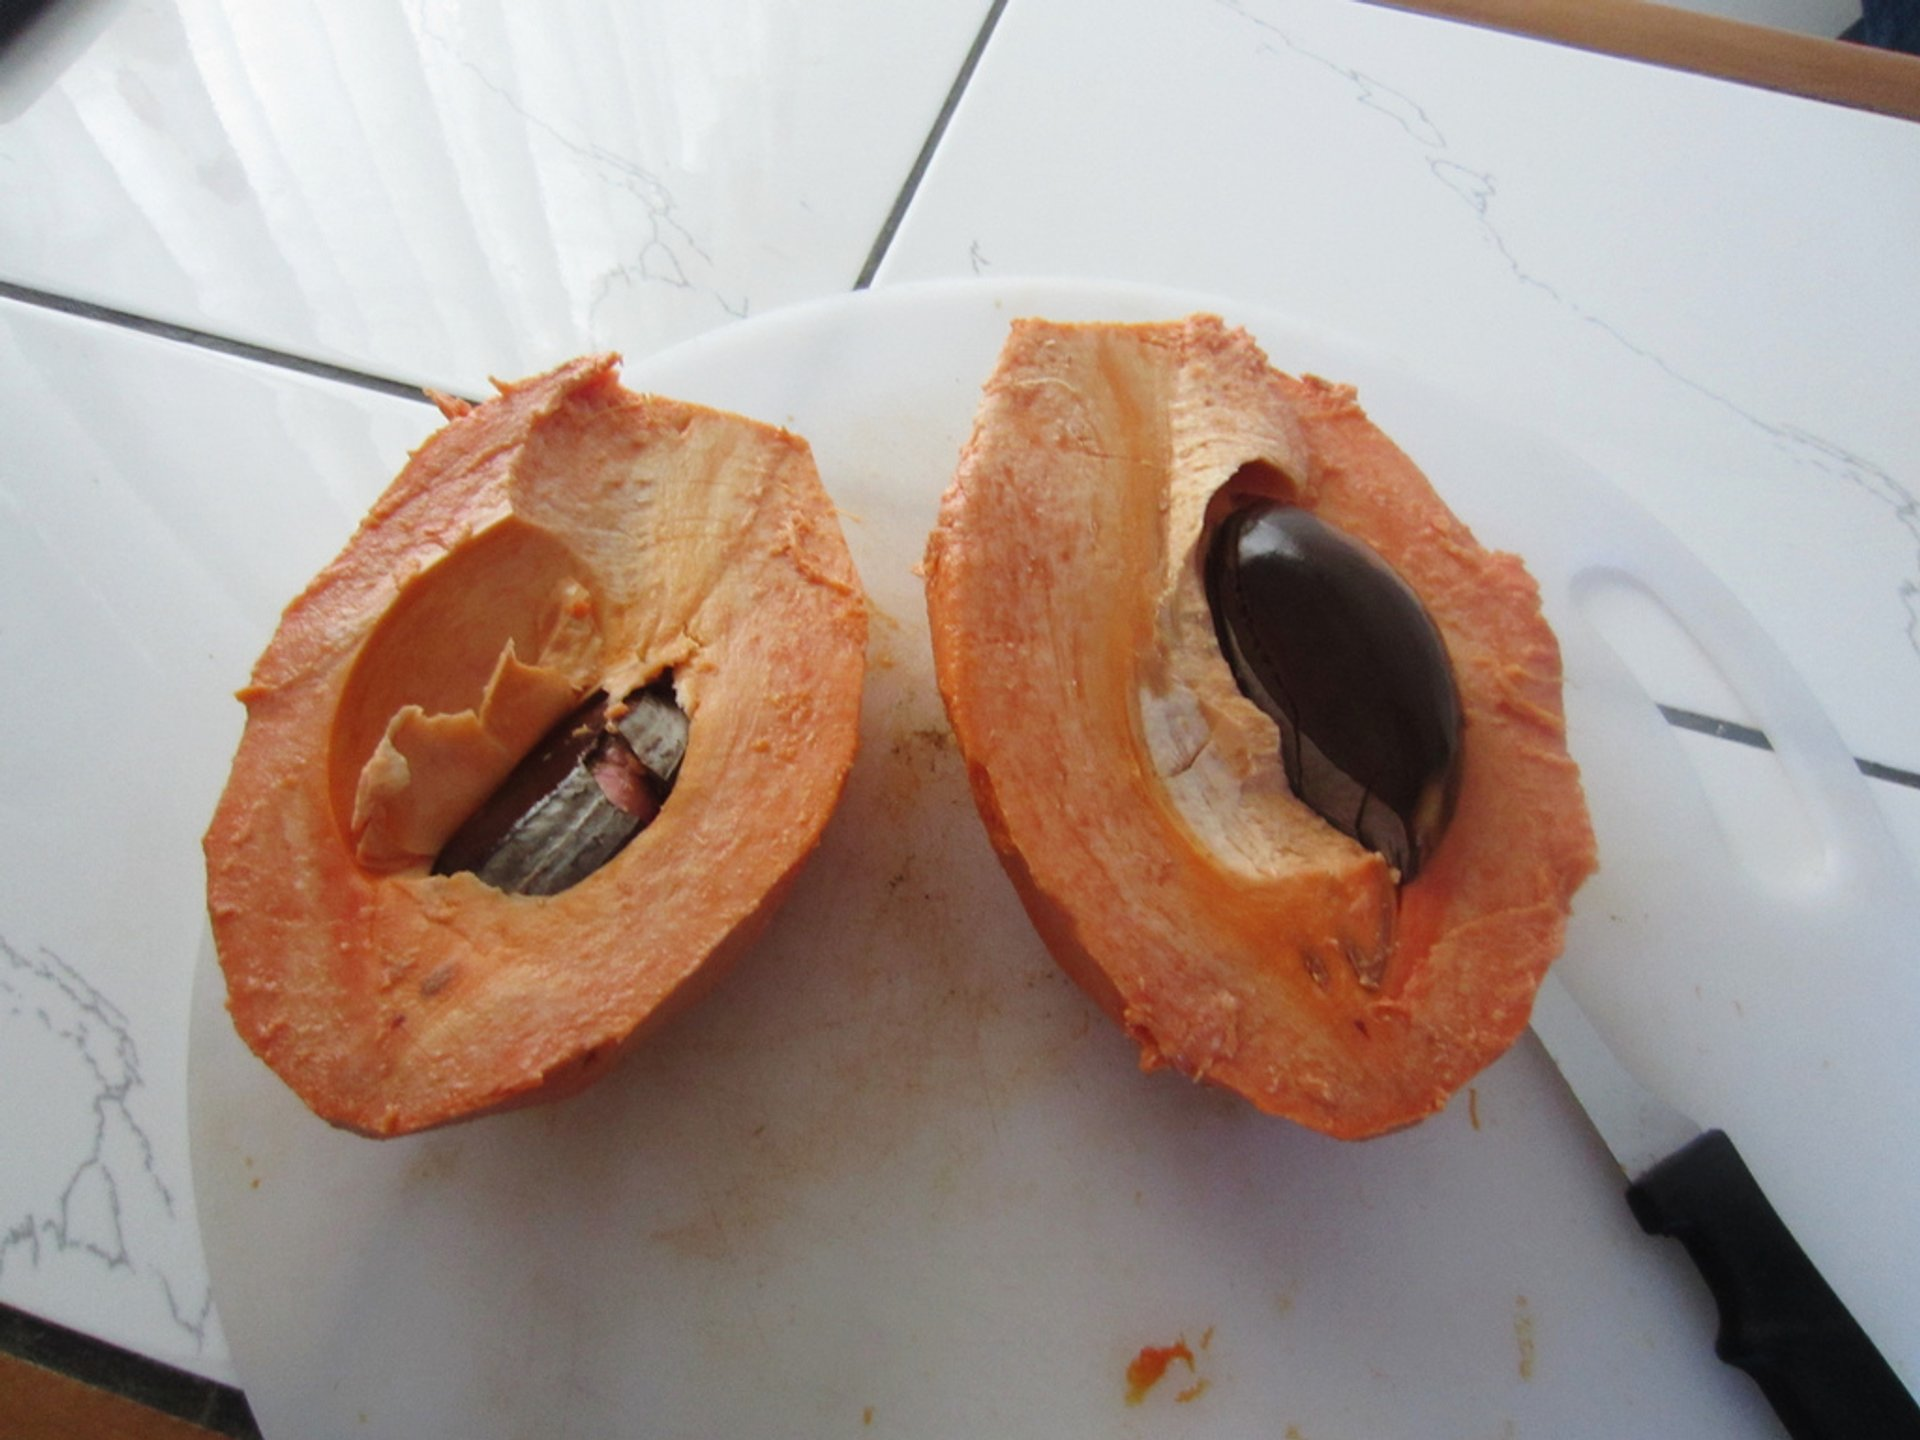 Sapote in Costa Rica 2019 - Best Time